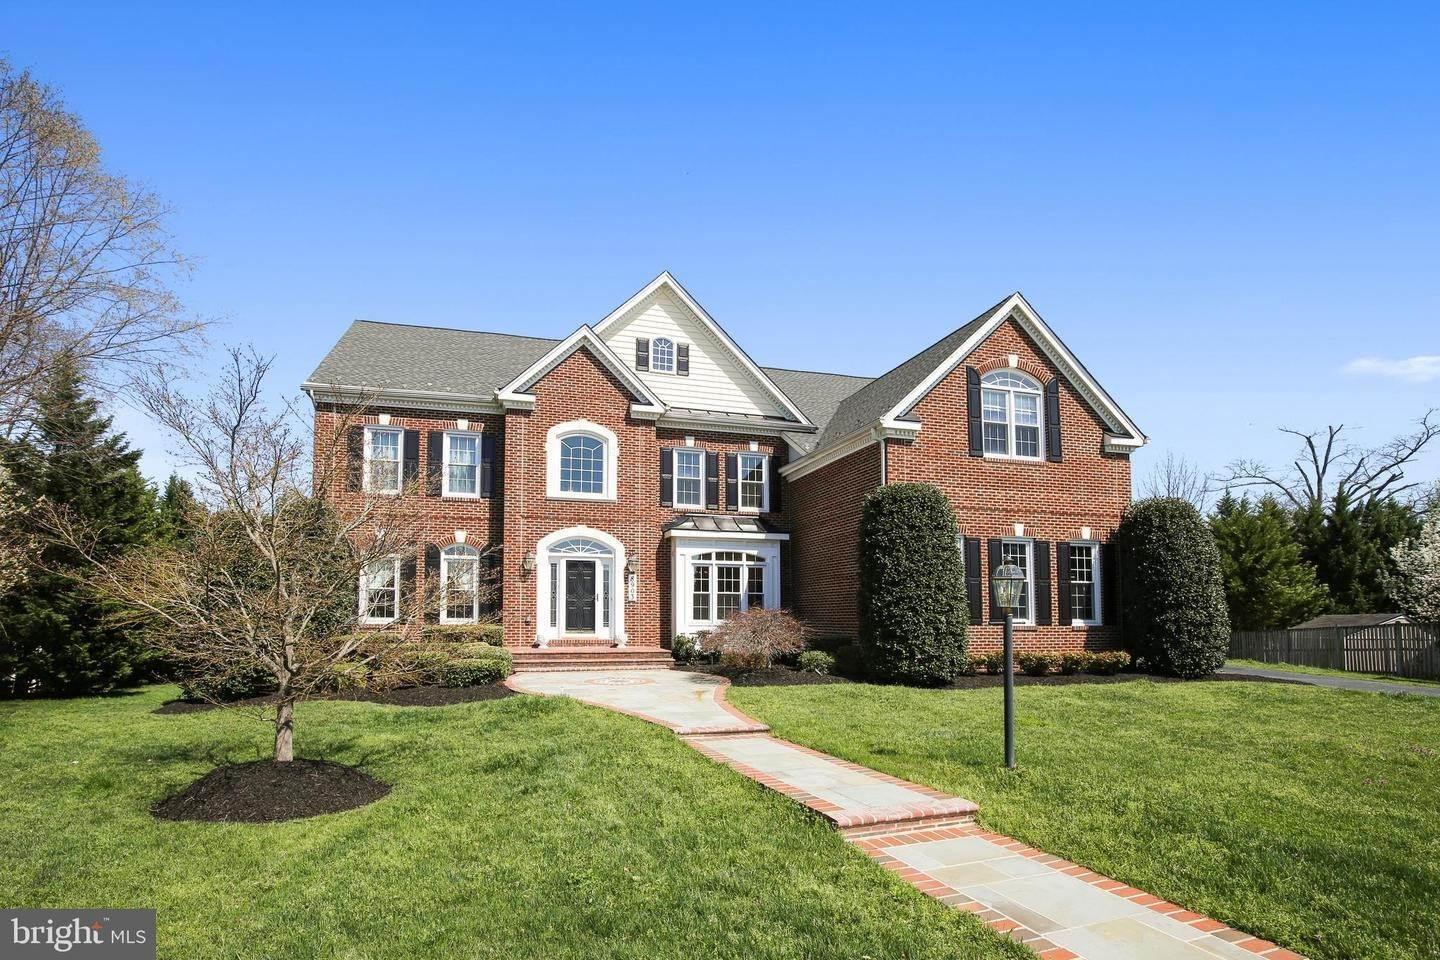 4. Single Family Homes à Alexandria, Virginia, 22309 États-Unis